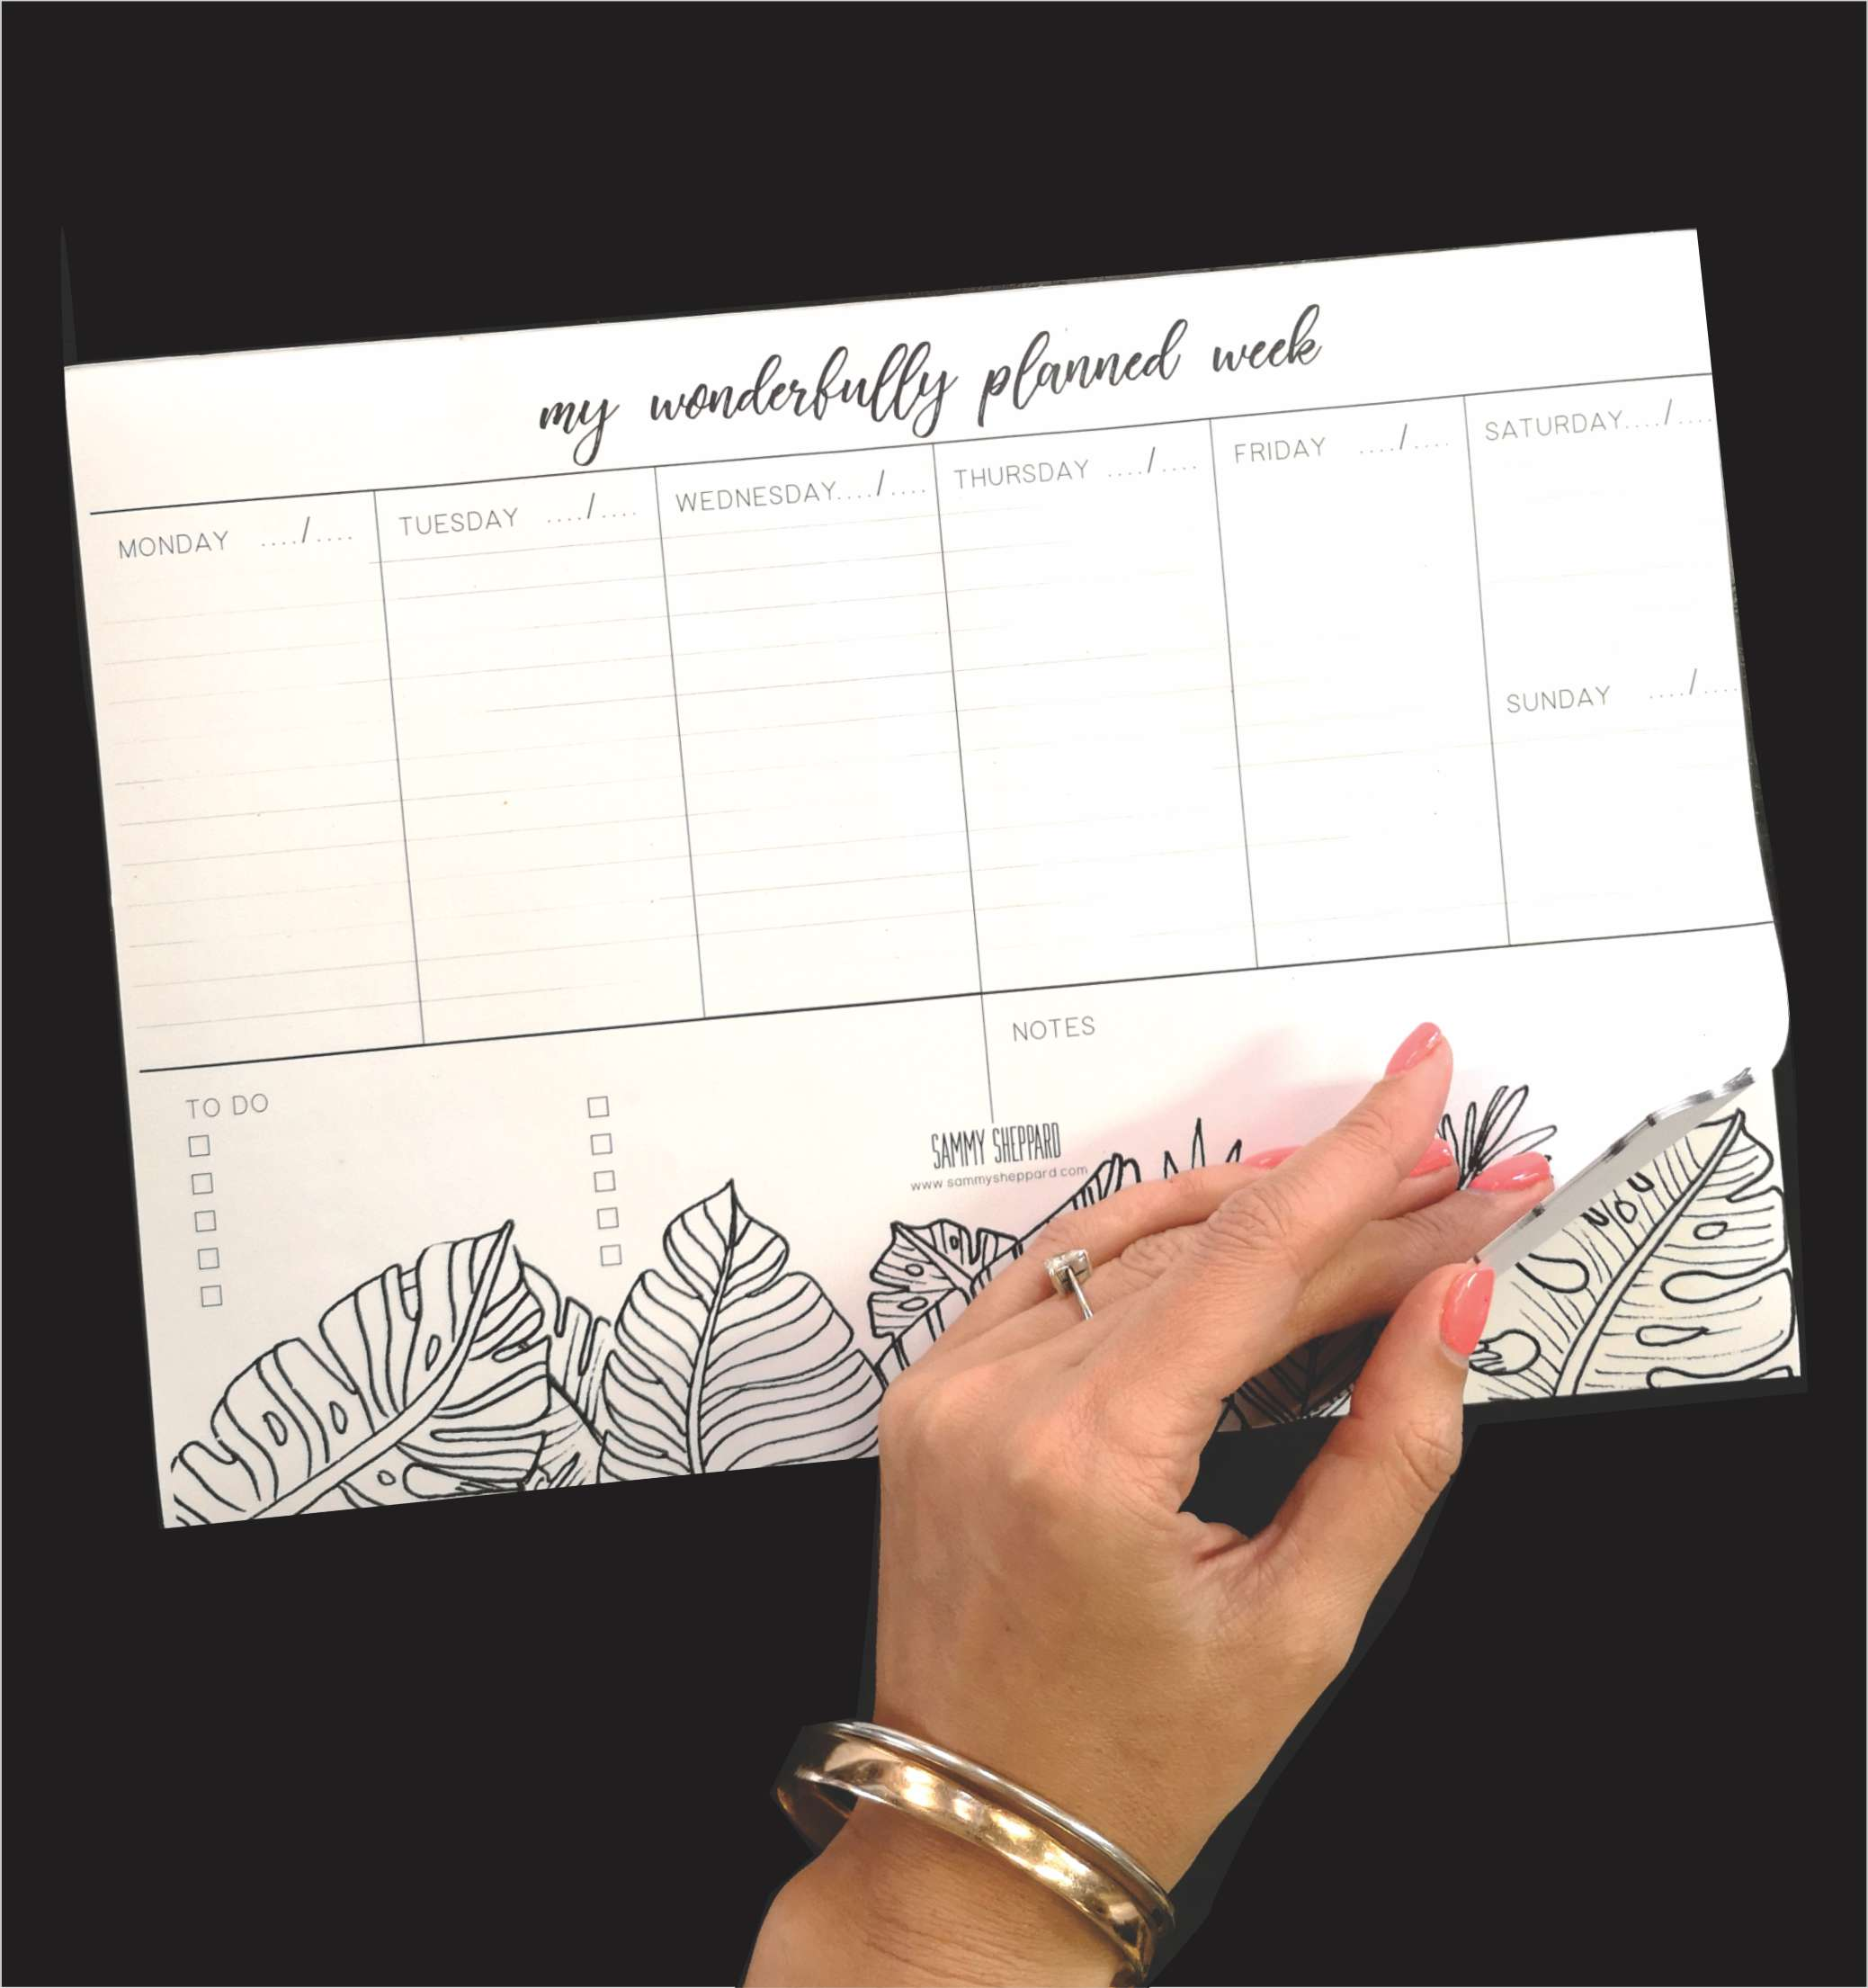 Plan and view your entire week on this beautiful A4 notepad style weekly planner. Stick it on the fridge or use it on your desk,